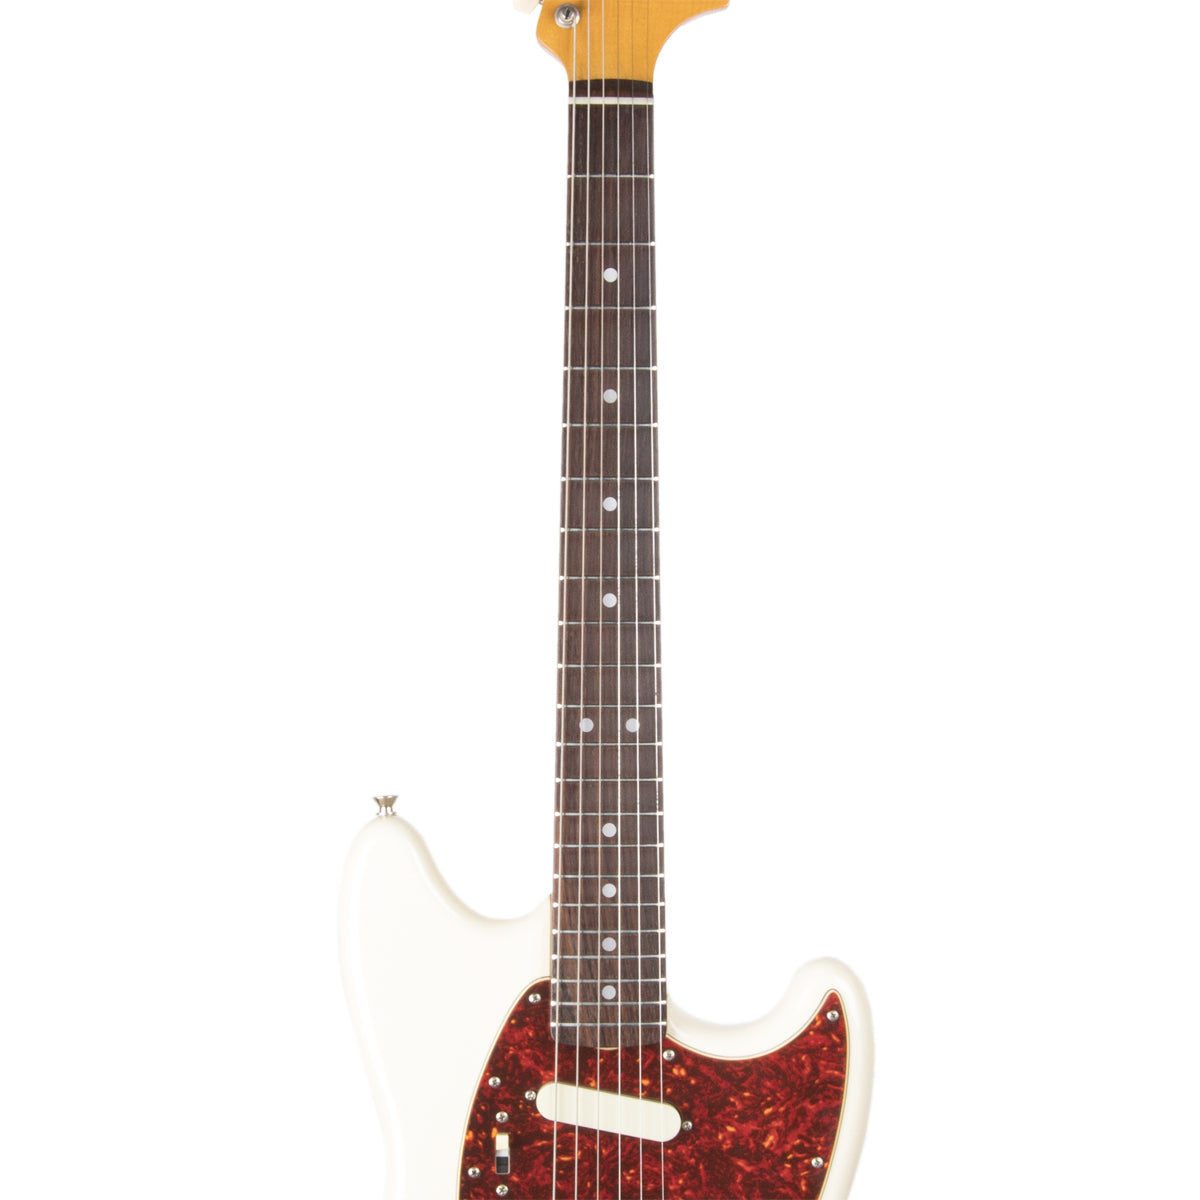 2006 - 2008 Fender Japan '65 Mustang - MG65, Vintage White